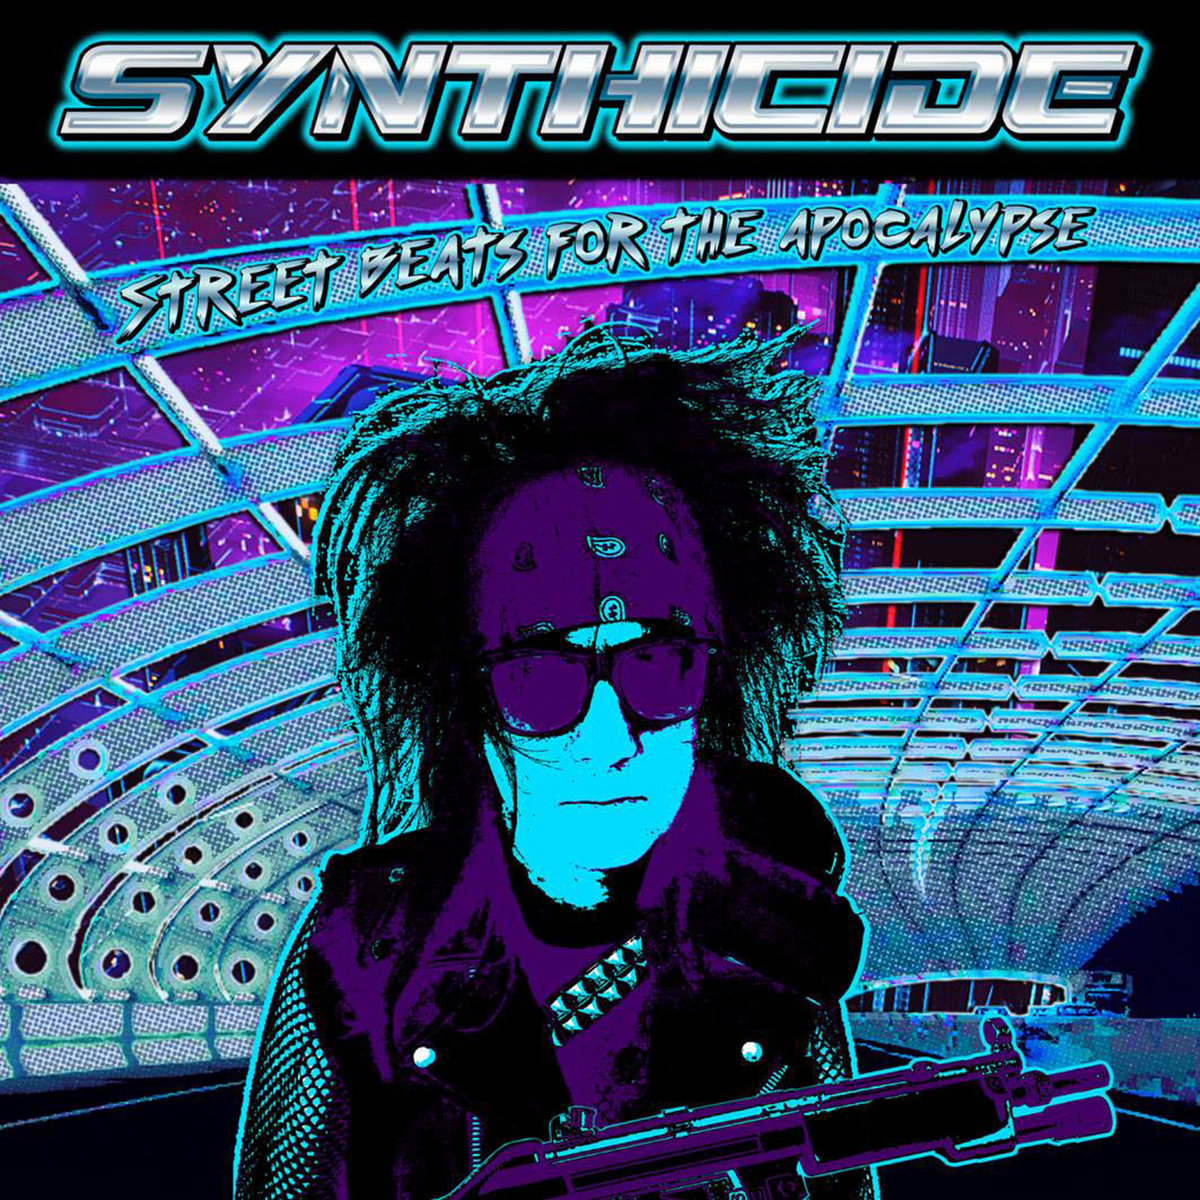 Street beats for the apocalypse future retro music by synthicide malvernweather Image collections